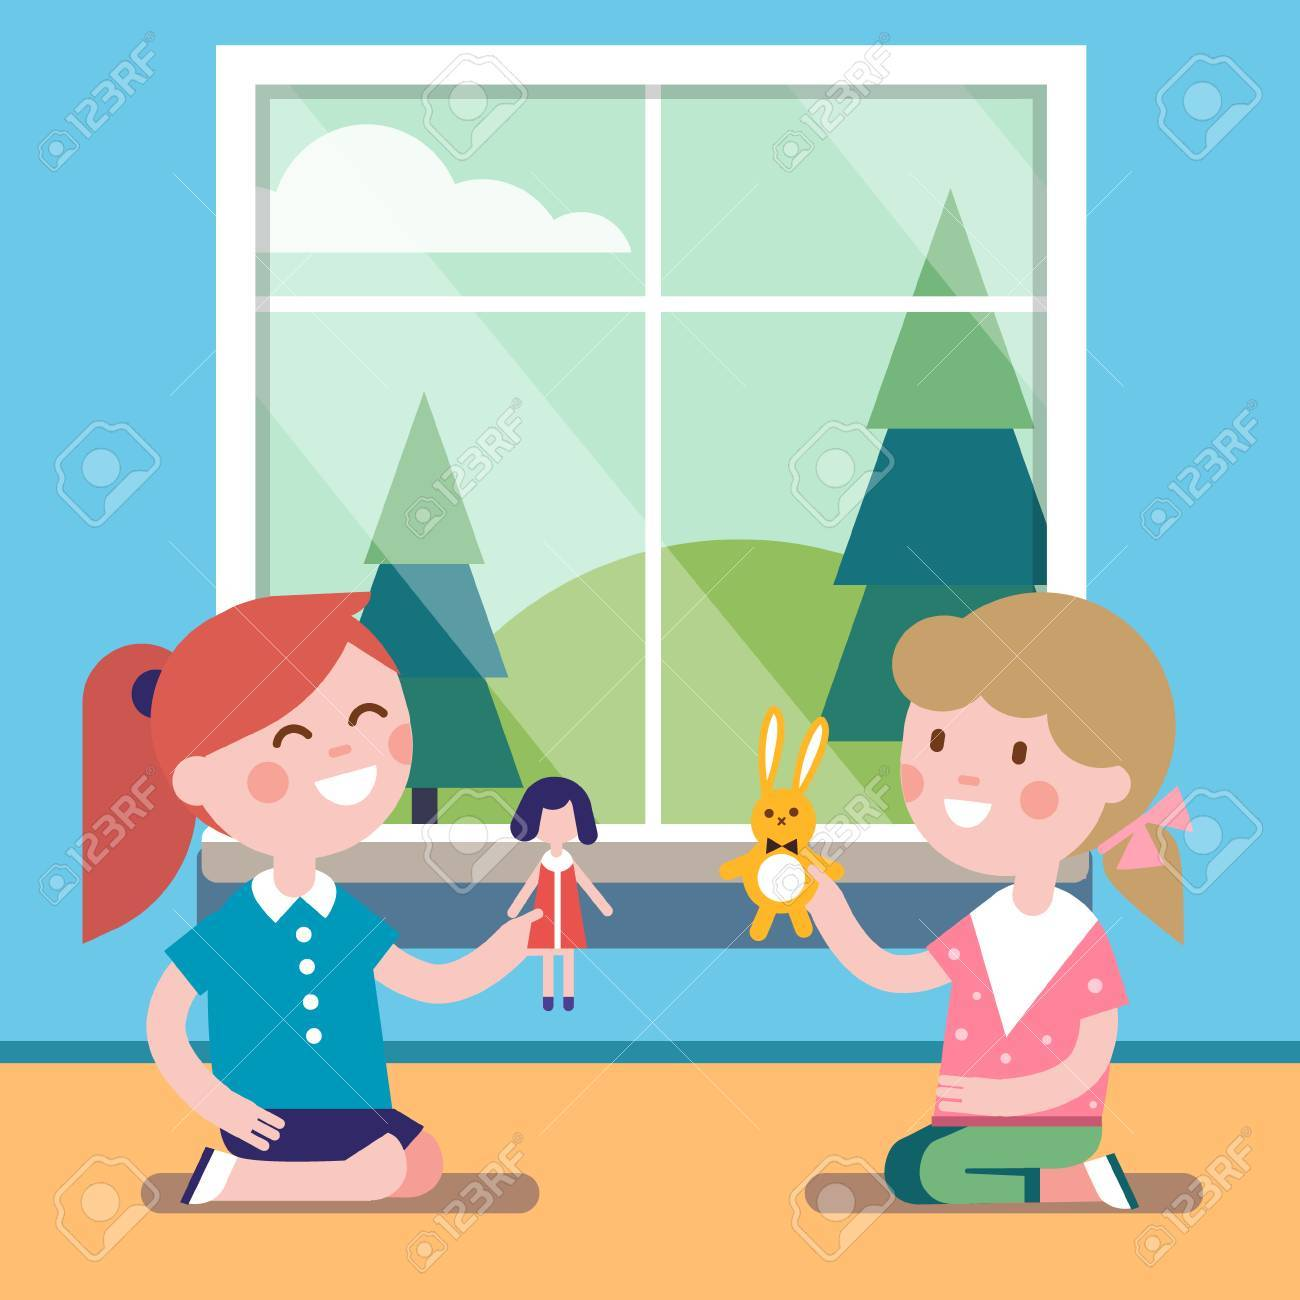 Two friends playing with toy dolls together at the big window.